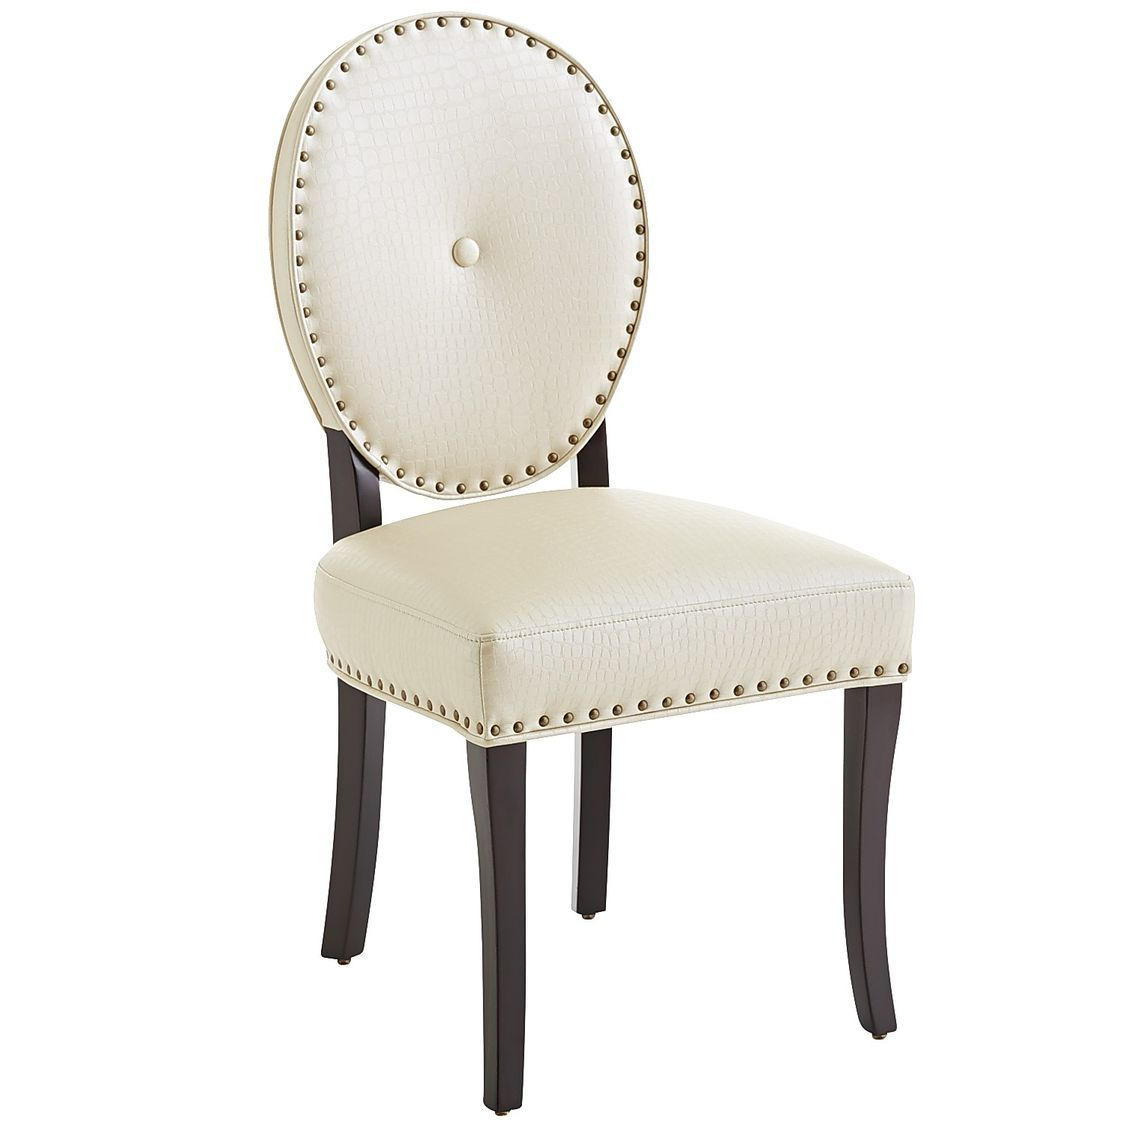 Marvelous Cadence Dining Chair Alabaster Leather 169 95 At Pier 1 Creativecarmelina Interior Chair Design Creativecarmelinacom